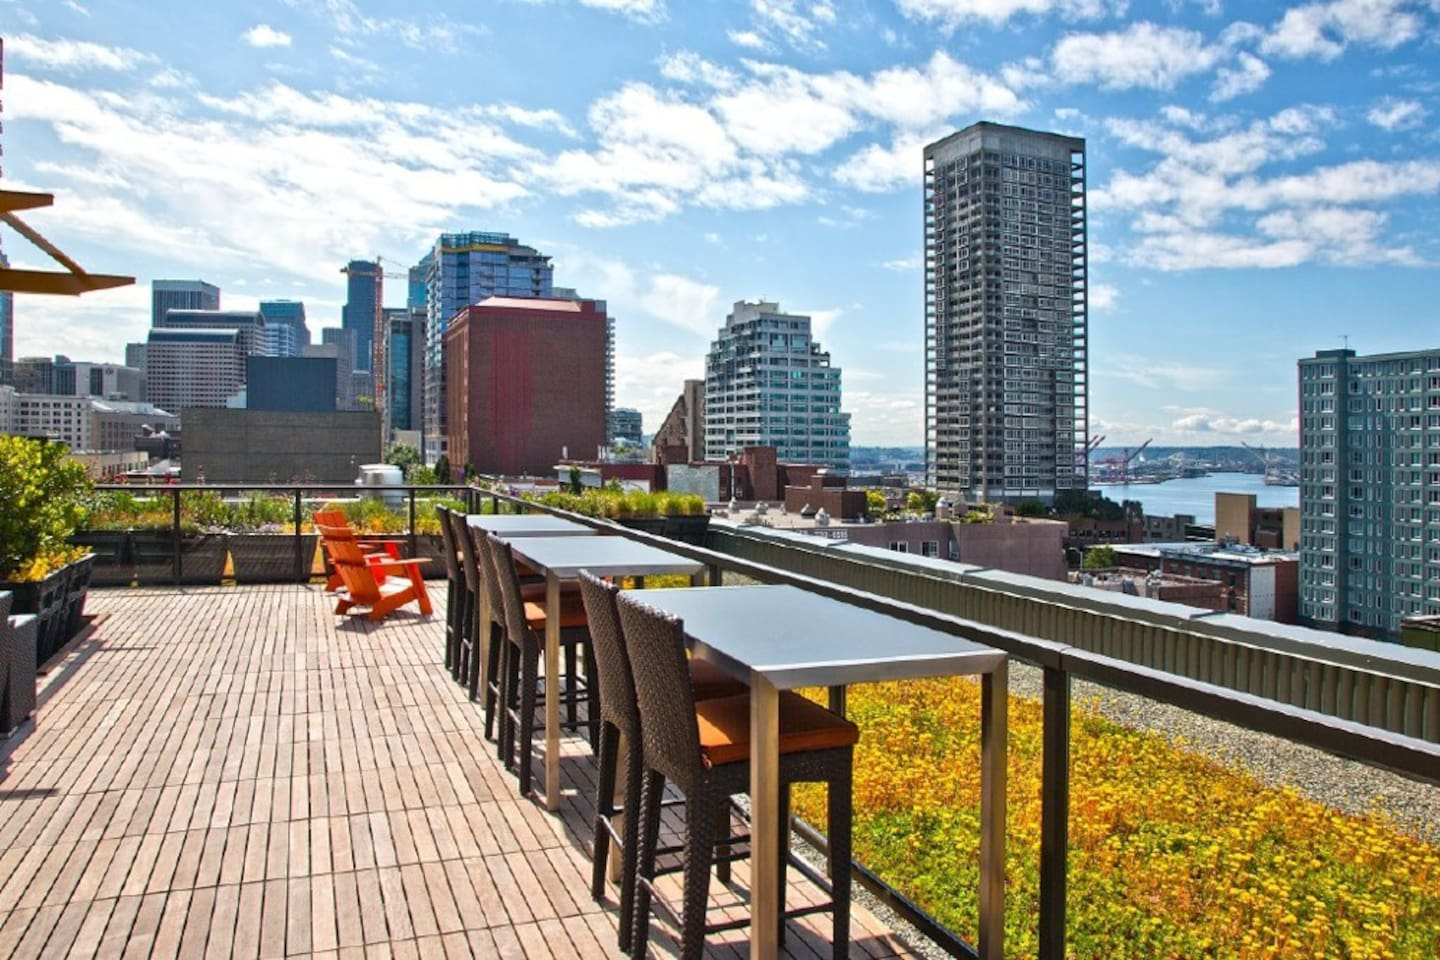 Beautiful Rooftop Deck - with stunning views of the water & downtown. Enjoy the BBQ too!